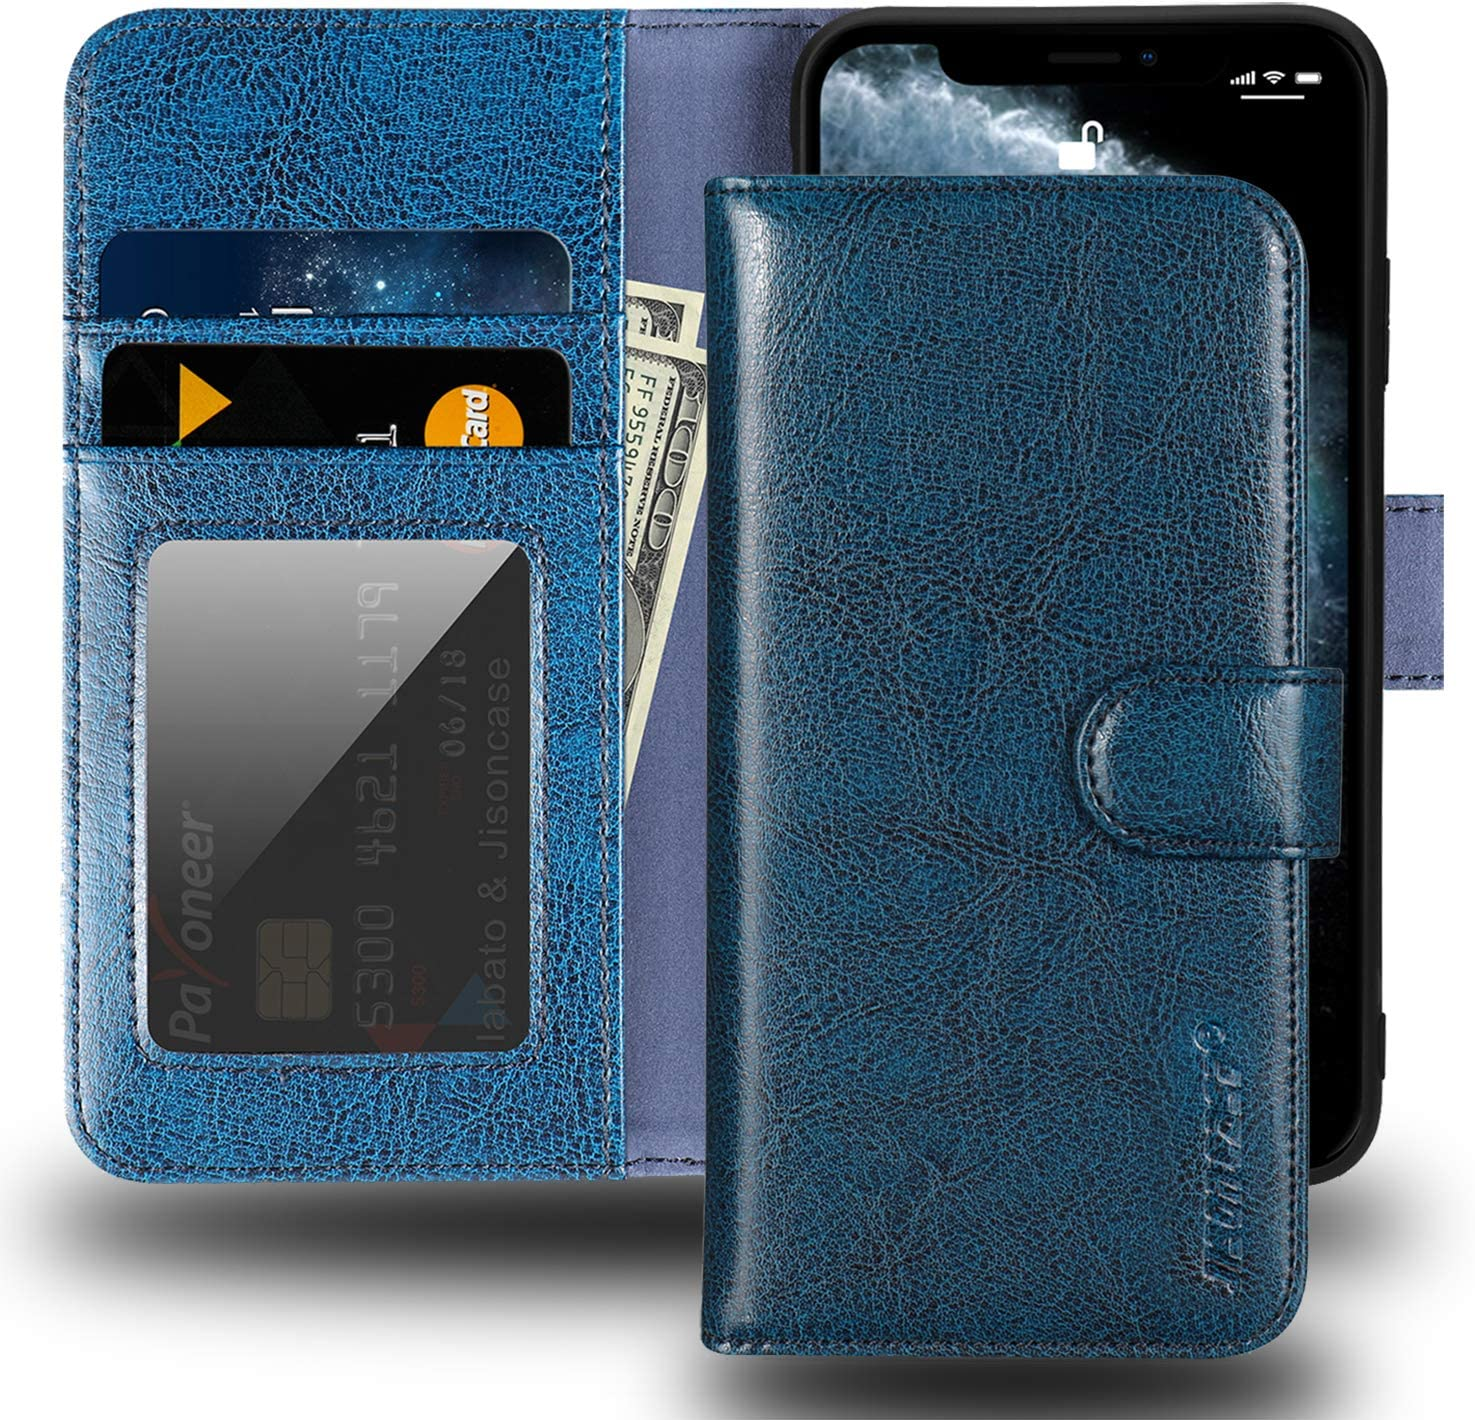 "JISONCASE iPhone X Wallet Case,Genuine Leather iPhone Xs Case with Card Holder & RFID Blocking & Wireless Charging,Shockproof Protective Cover Flip Case for Apple iPhone X 10 XS 5.8""- Blue"